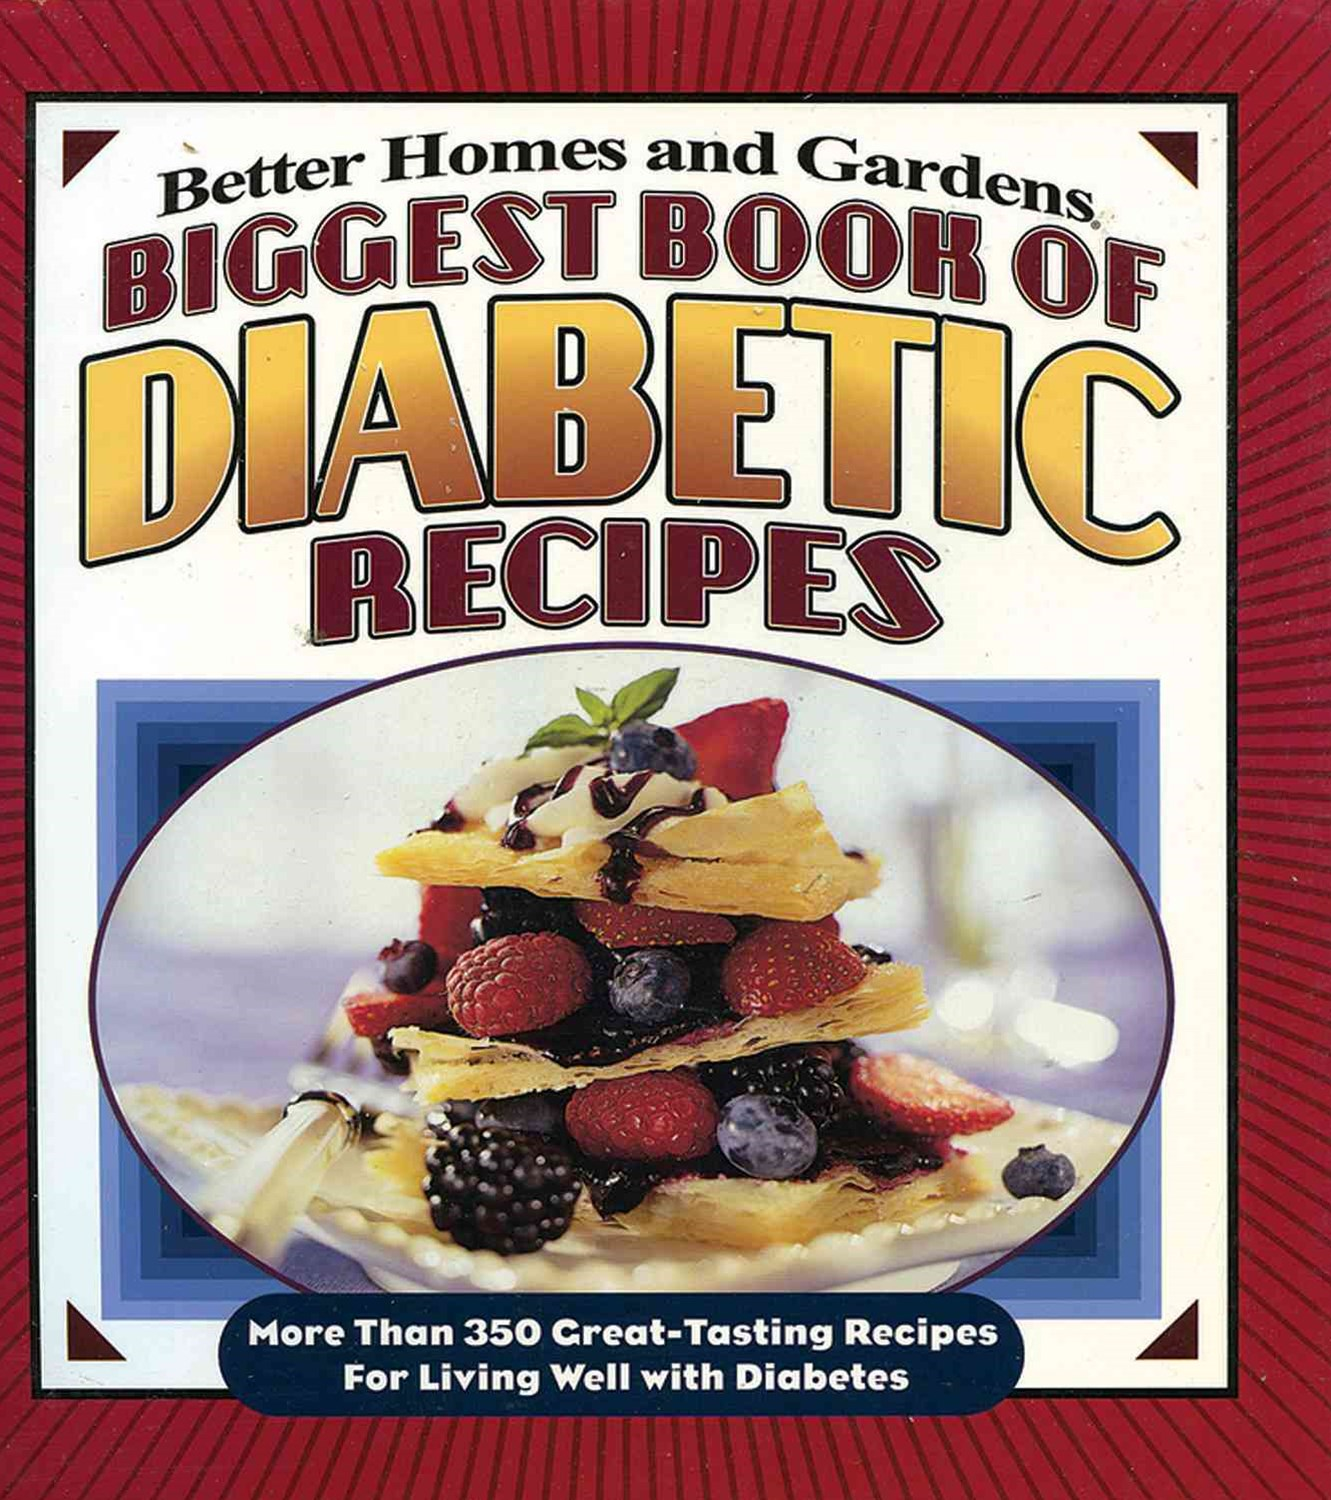 Biggest Book of Diabetic Recipes: Better Homes and Gardens